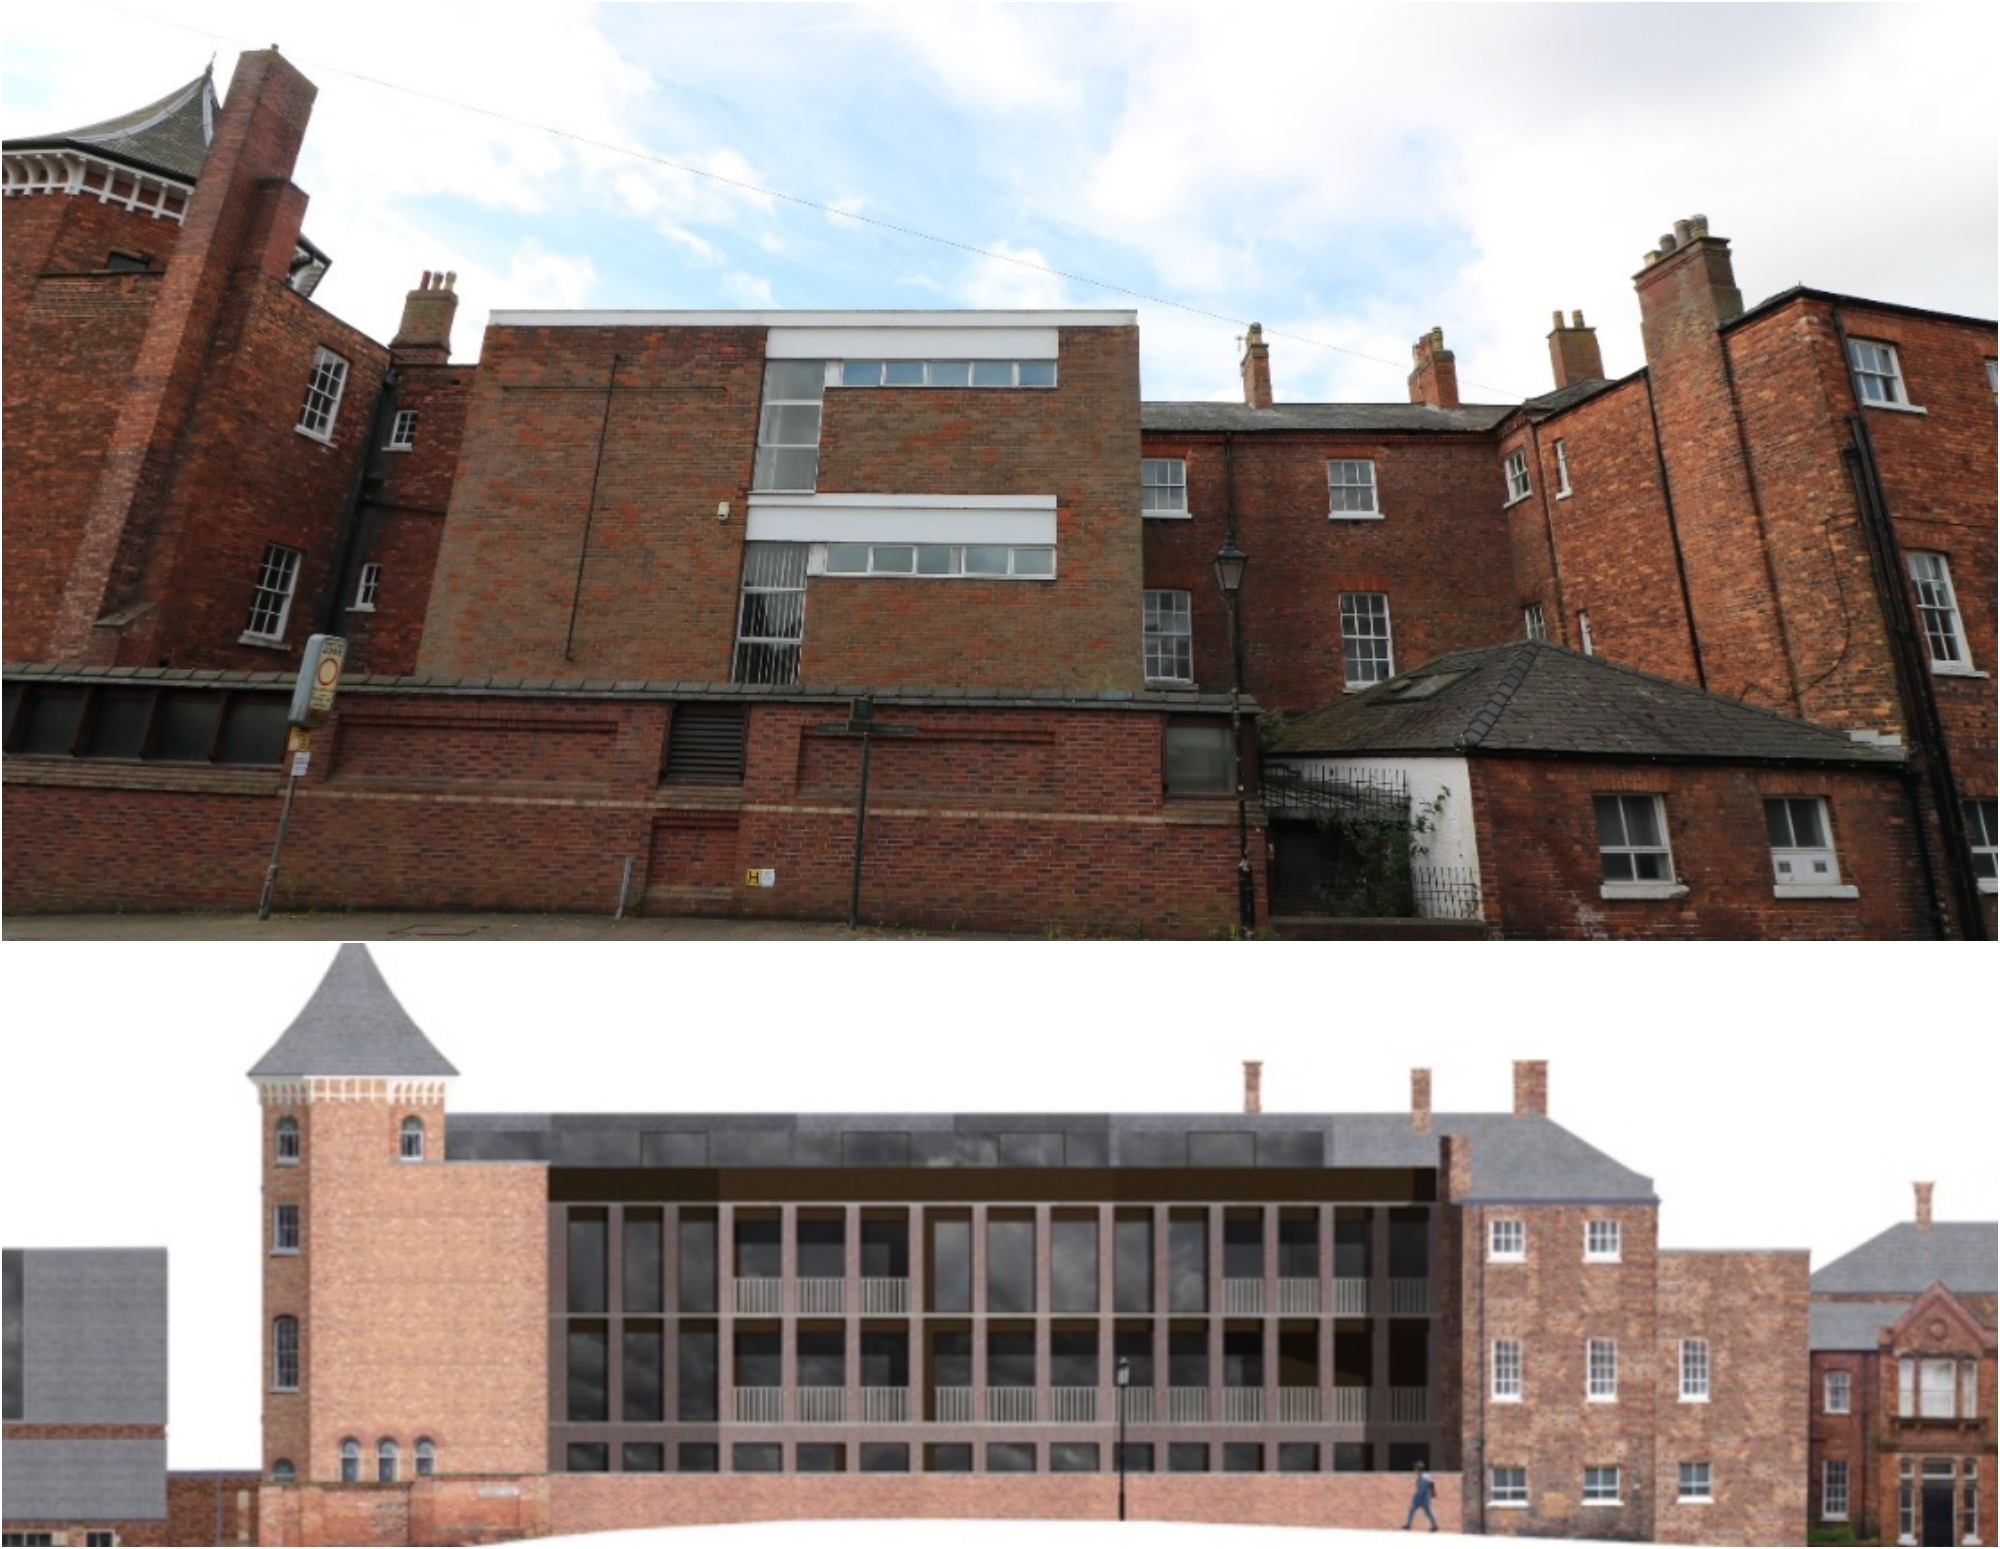 Designs for Chad Varah House. Current facade above with design proposal below: Jonathan Hendry Architects Ltd